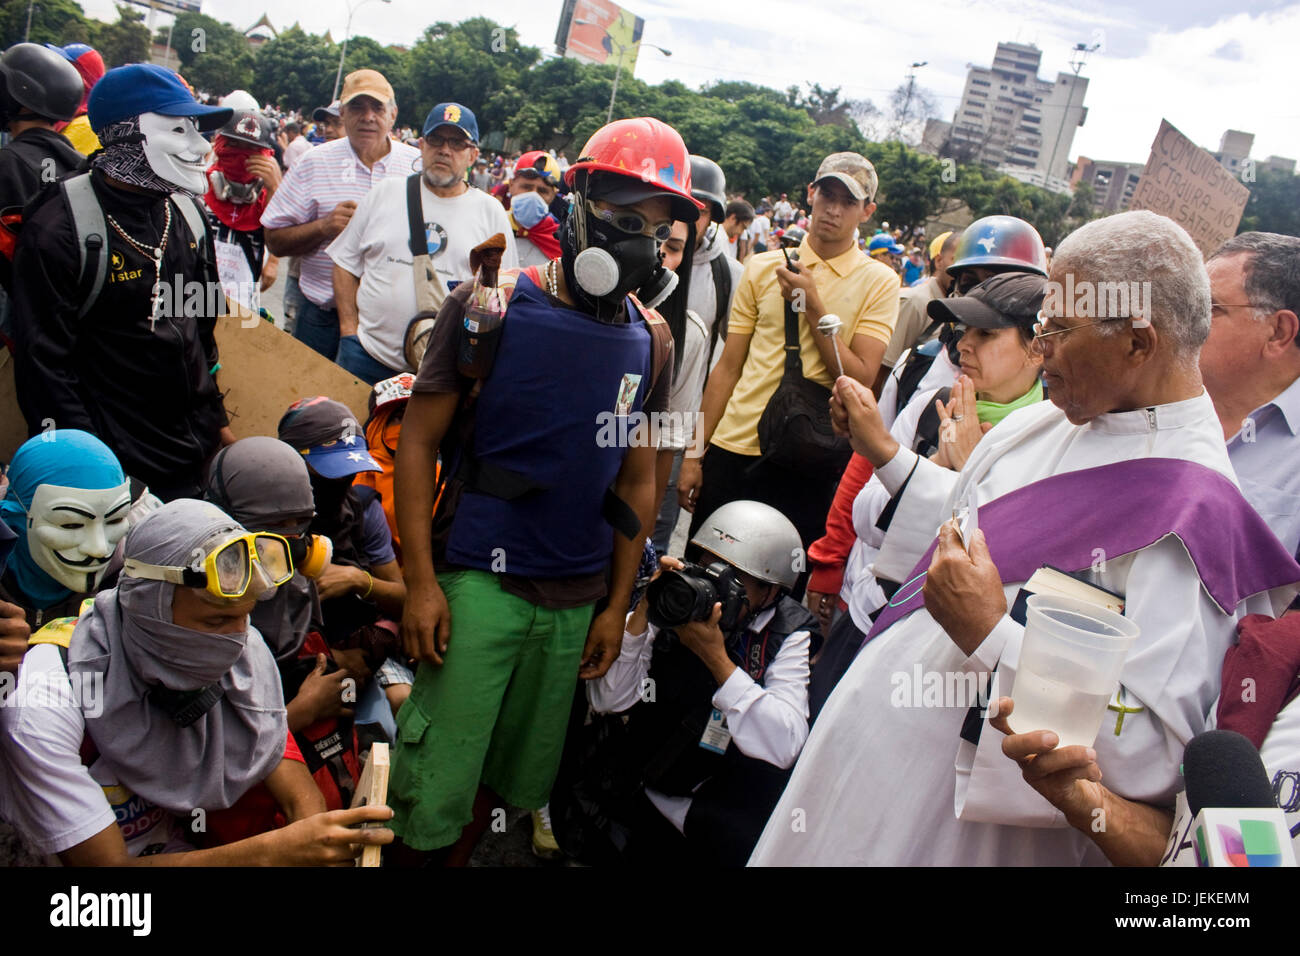 A priest talks and bless a group of demonstrators outside of a military air base during a protest against president - Stock Image